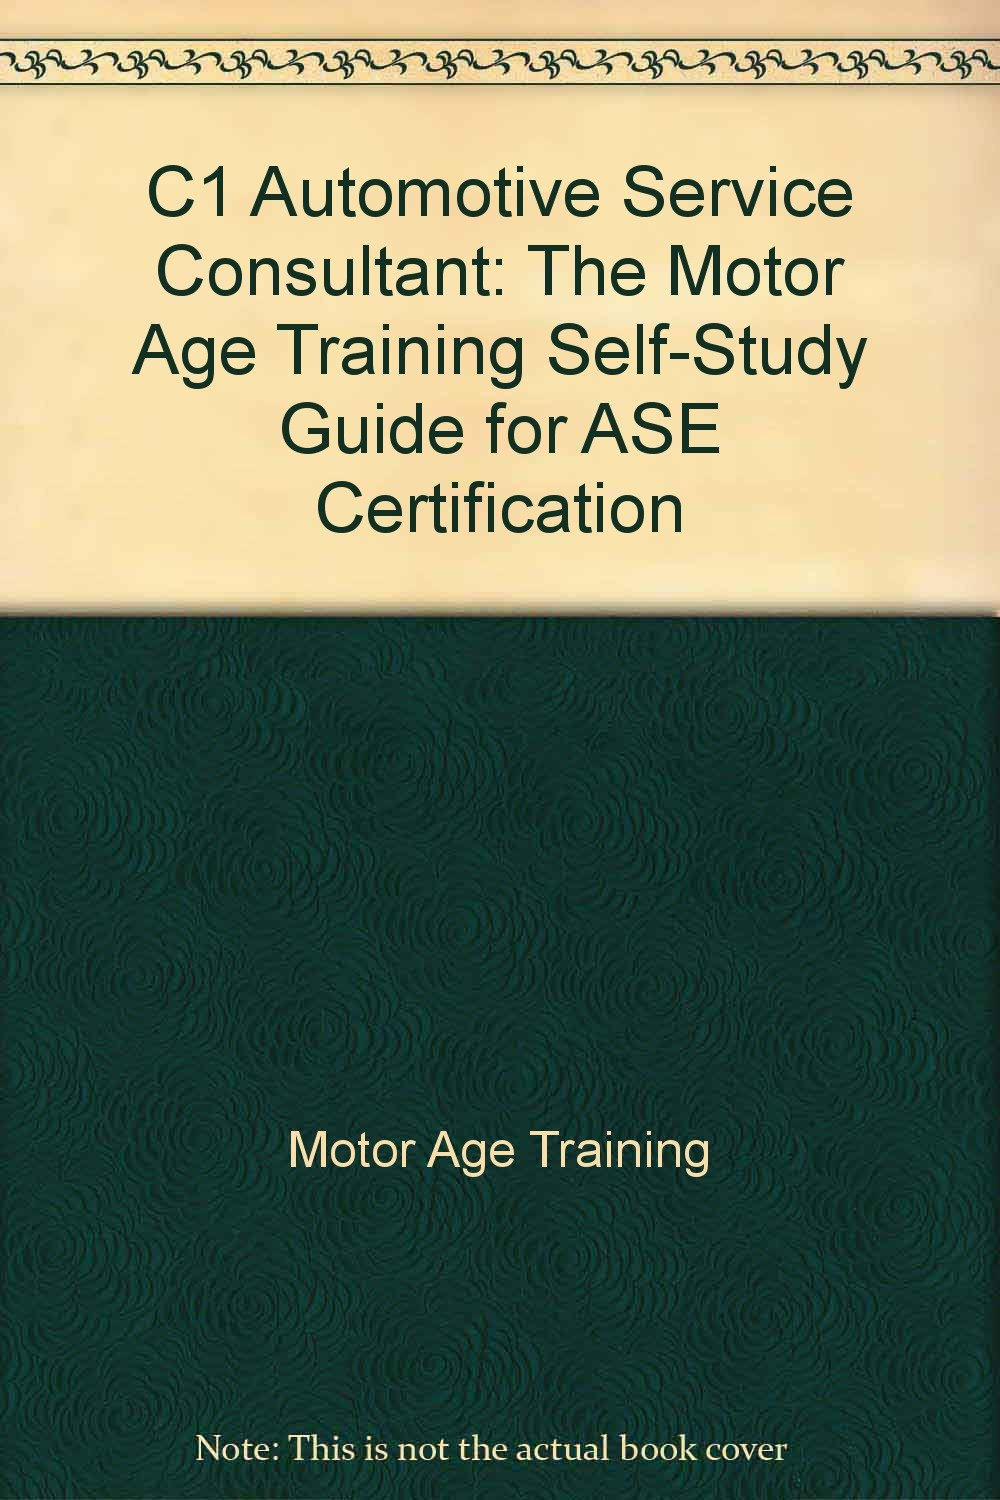 C1 Automotive Service Consultant The Motor Age Training Self Study